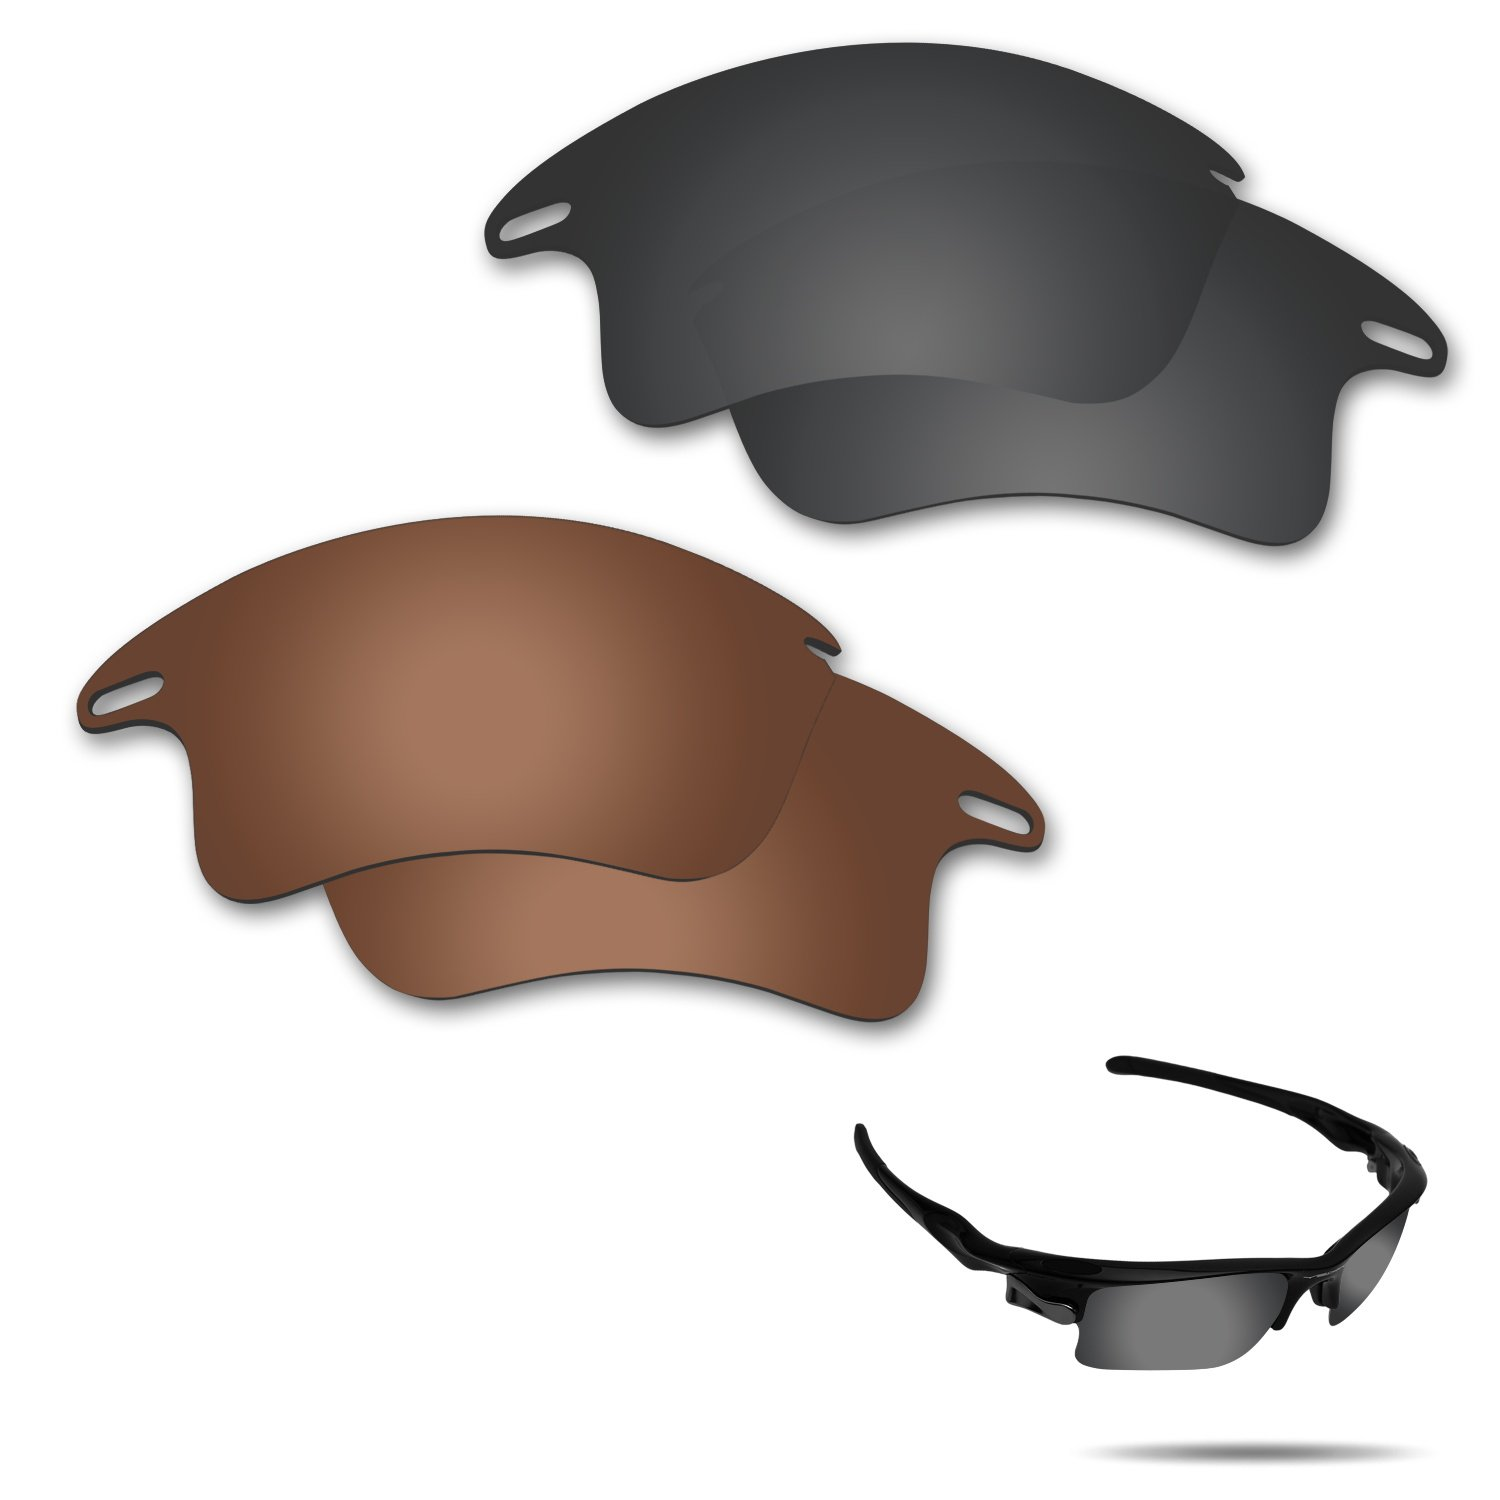 Fiskr Anti-Saltwater Polarized Replacement Lenses for Oakley Fast Jacket XL Sunglasses 2 Pairs Packed (Stealth Black & Bronze Brown)